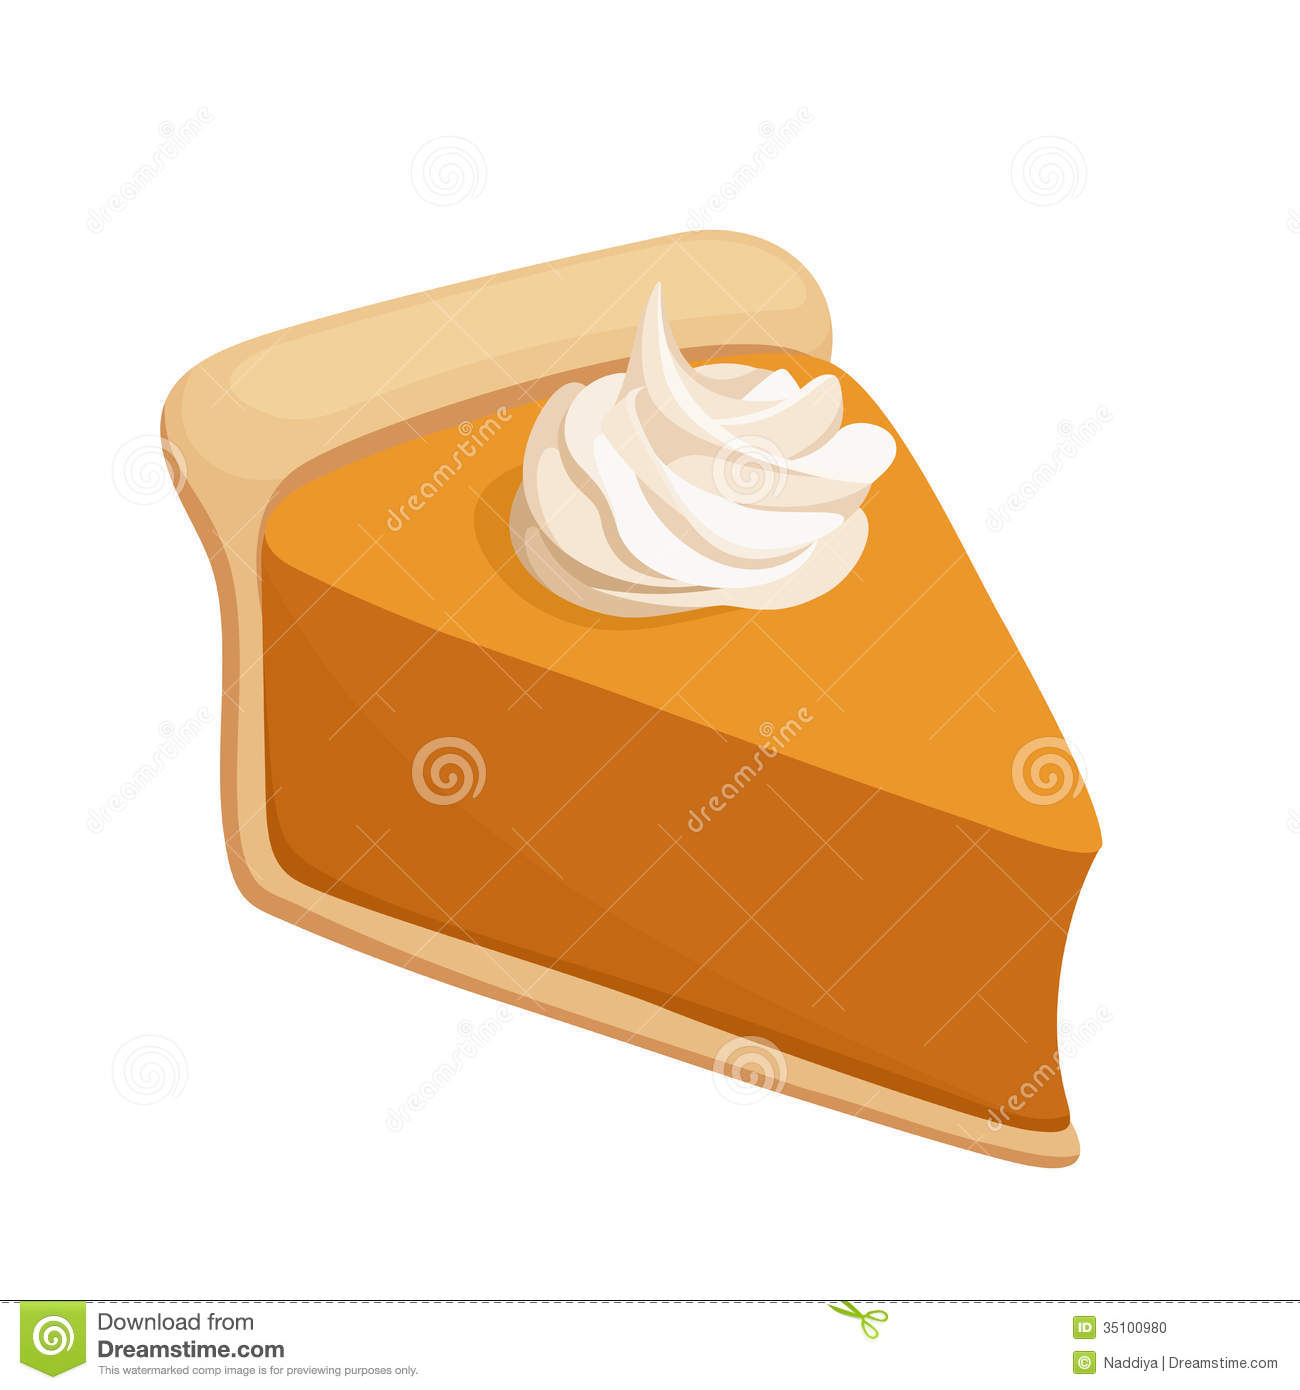 Illustration Of Slice Of Pumpkin Pie With Whipped Cream Isolated On A